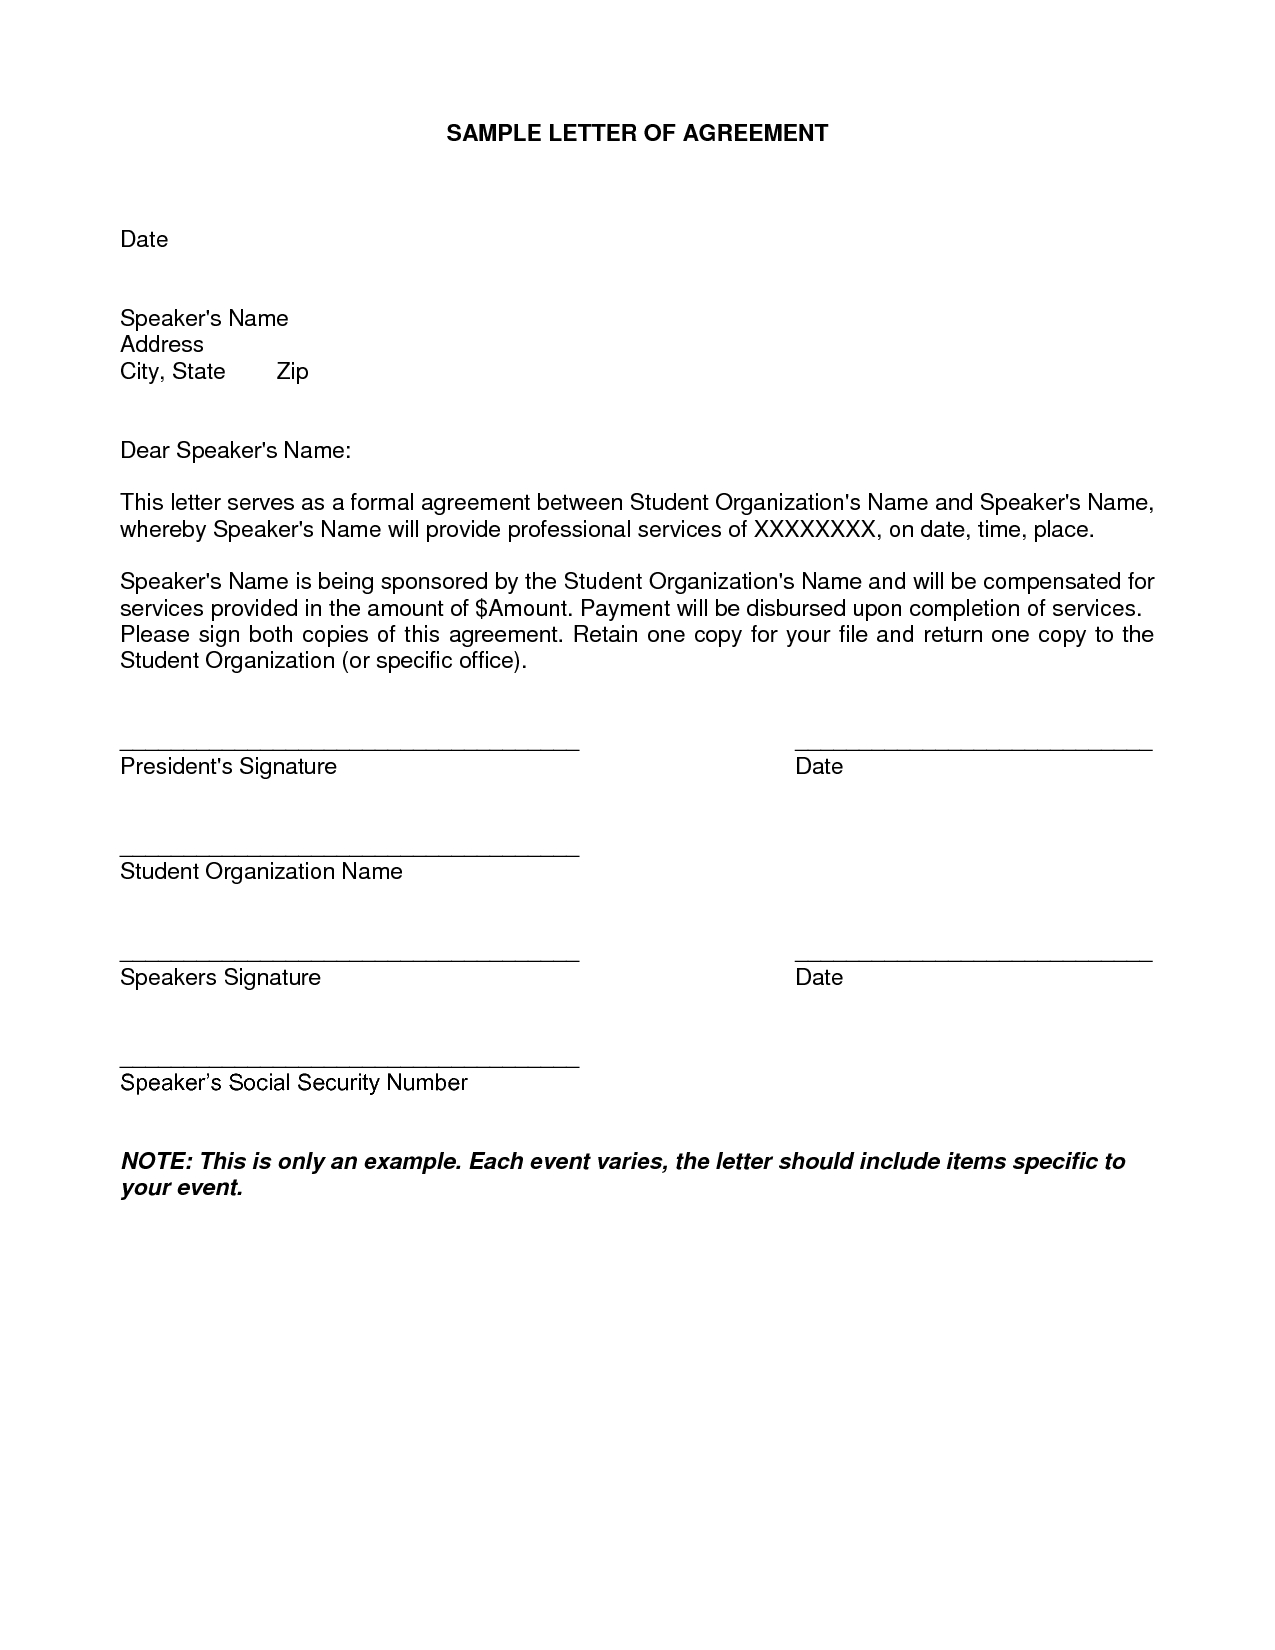 Repayment Agreement Letter Template - Letter Agreement Samples Template Seeabruzzo Letter Of